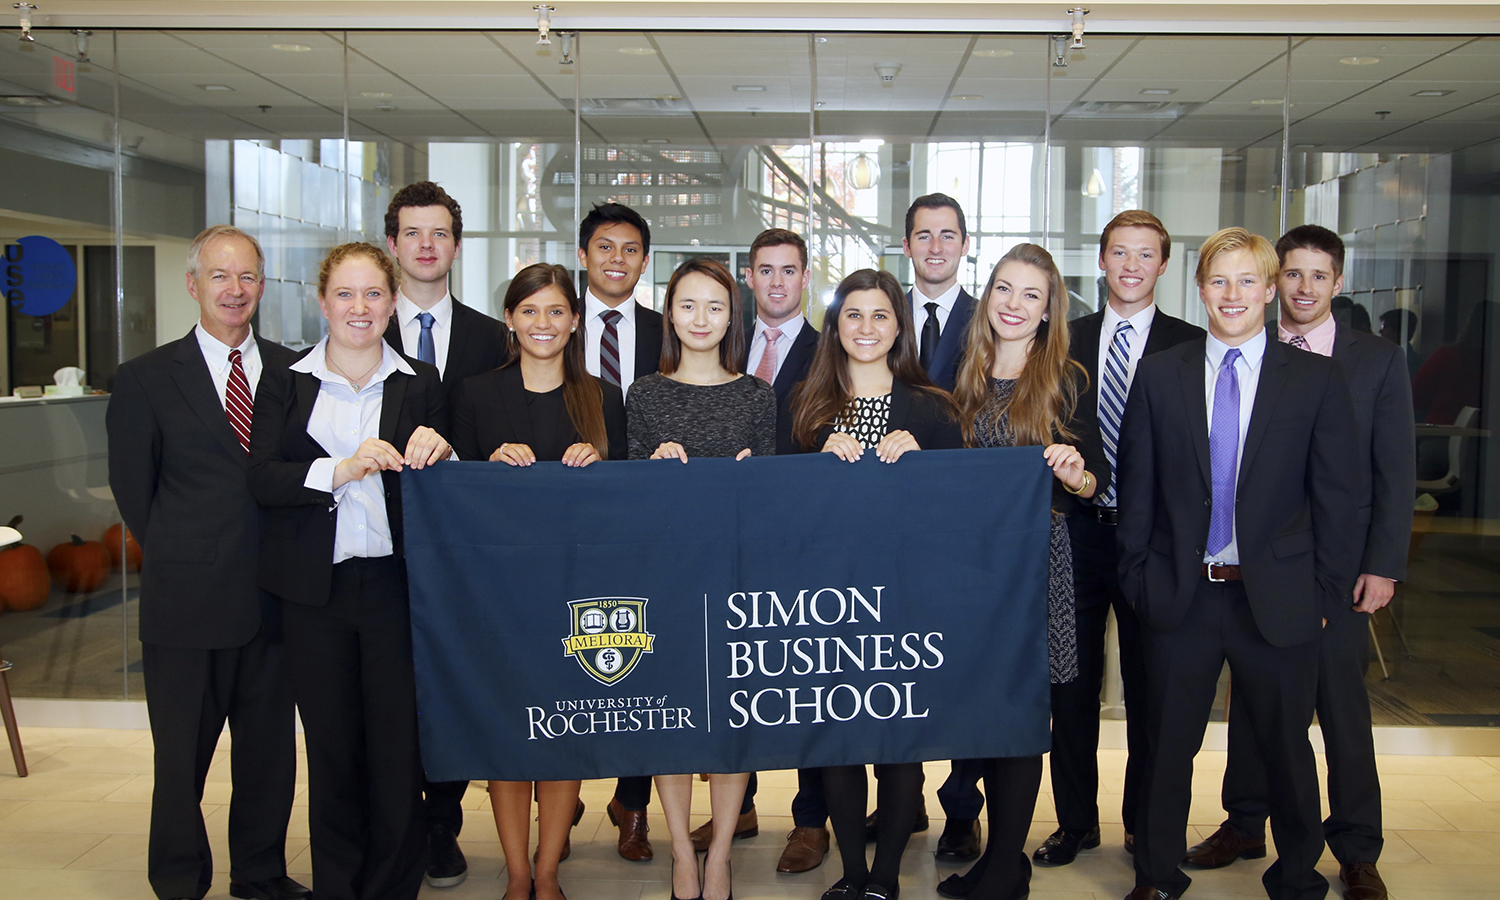 Simon Business School Group